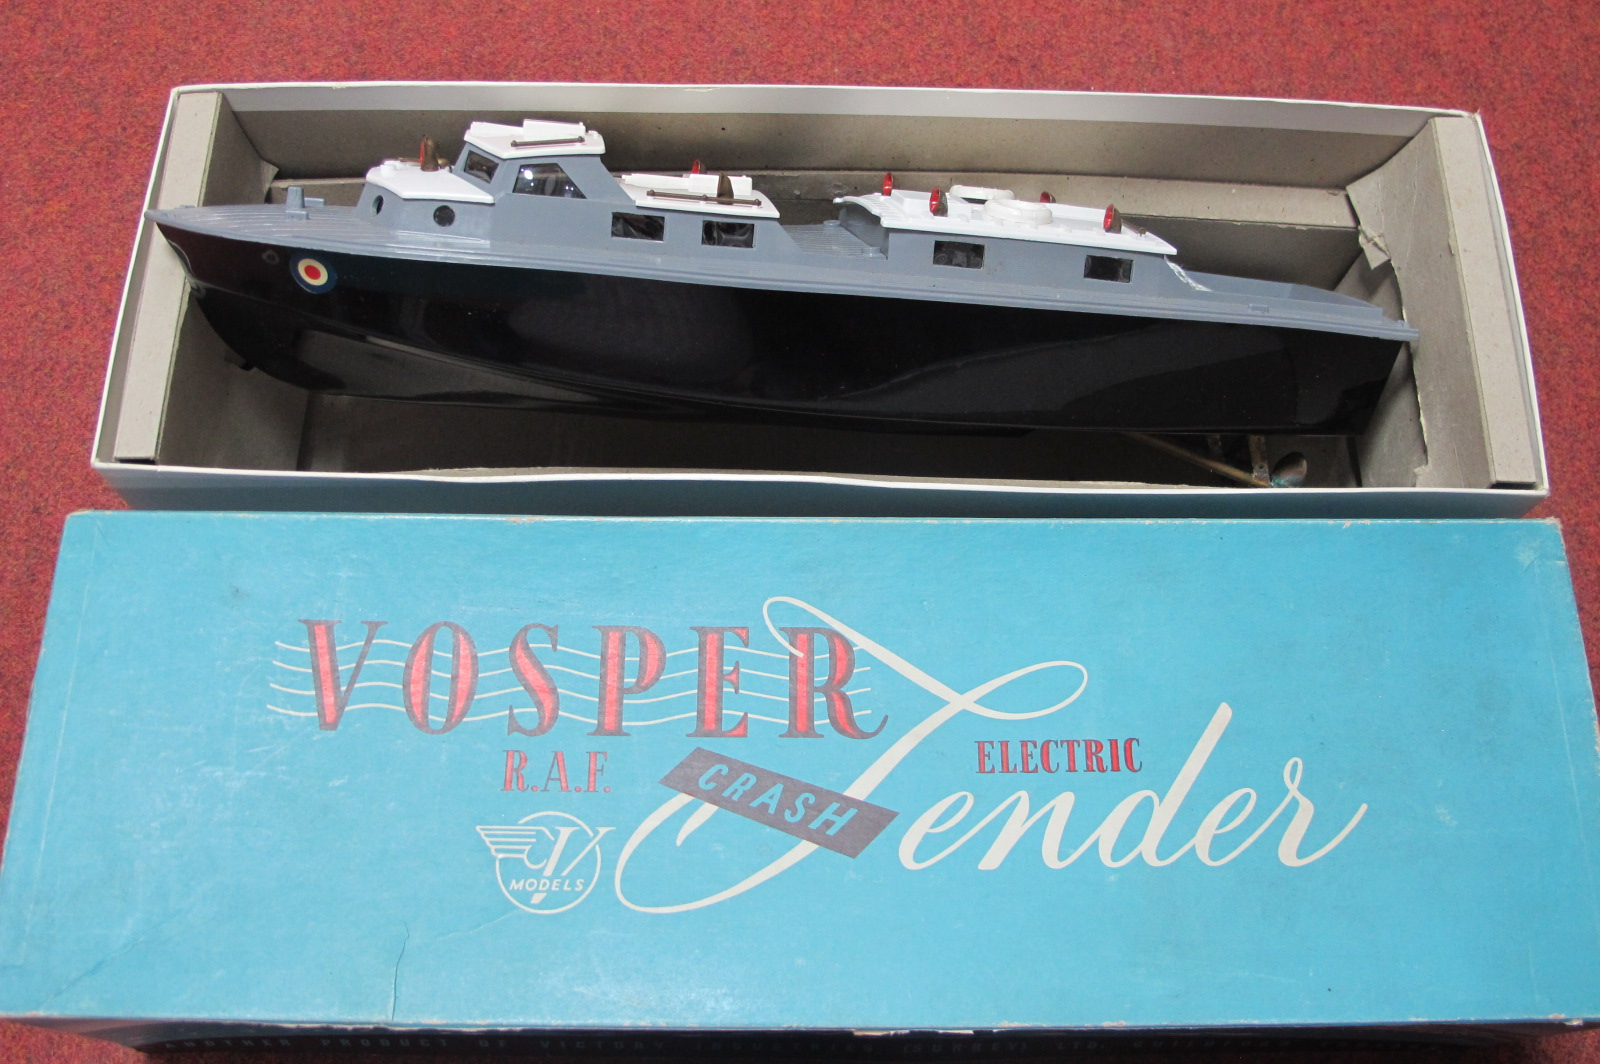 A Vosper RAF Crash Tender by Victory, appears little used but one rudder missing, boxed.